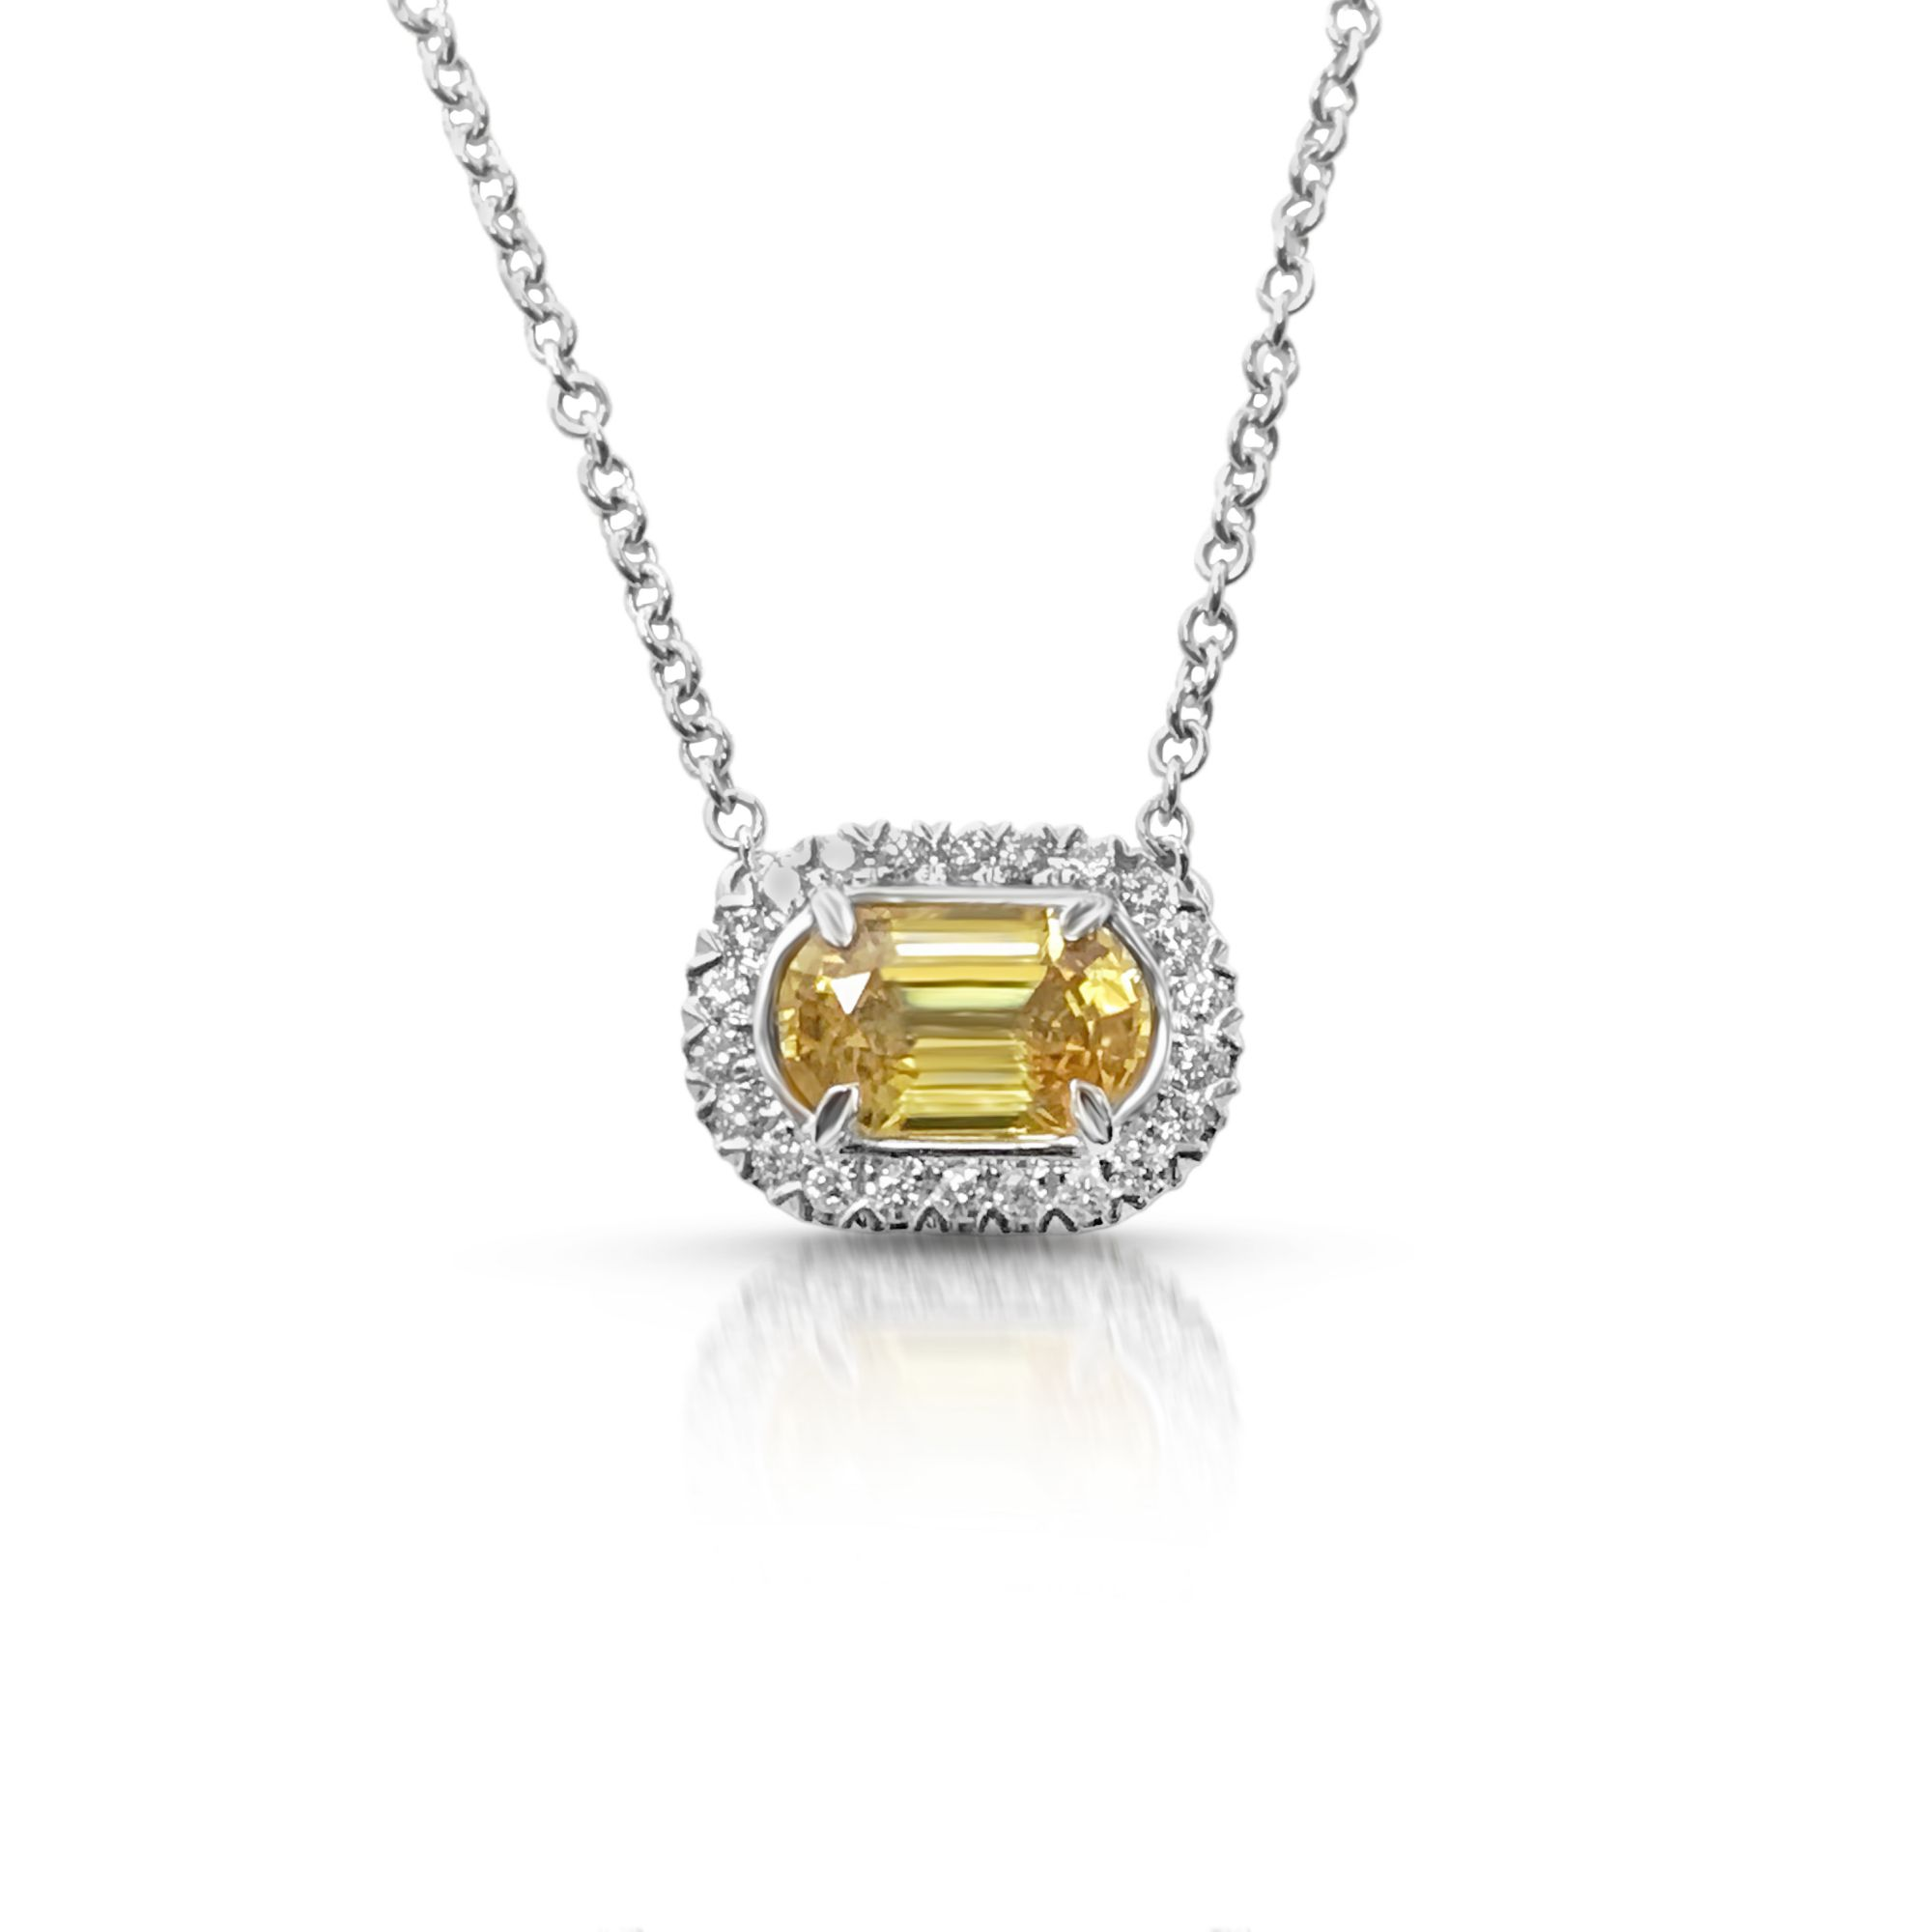 shape in lrg detailmain pendant sapphire pear necklace main diamond white gold and phab